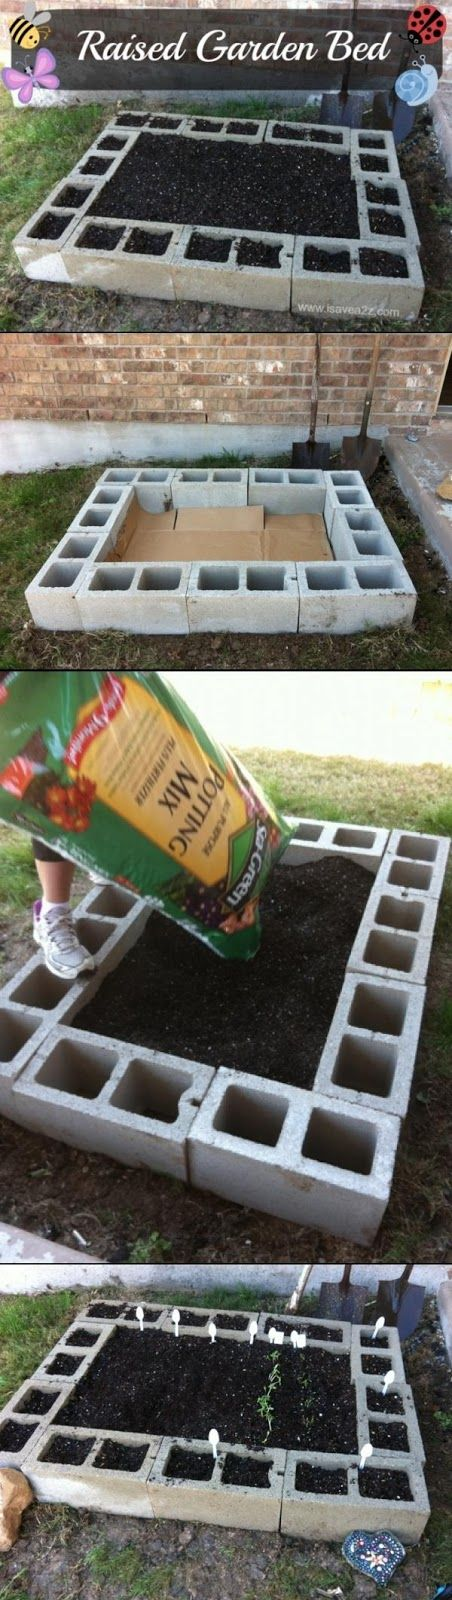 may need to DIY one of these next gardening season! All the openings would be perfect for flowers or herbs | cinder block raised garden bed